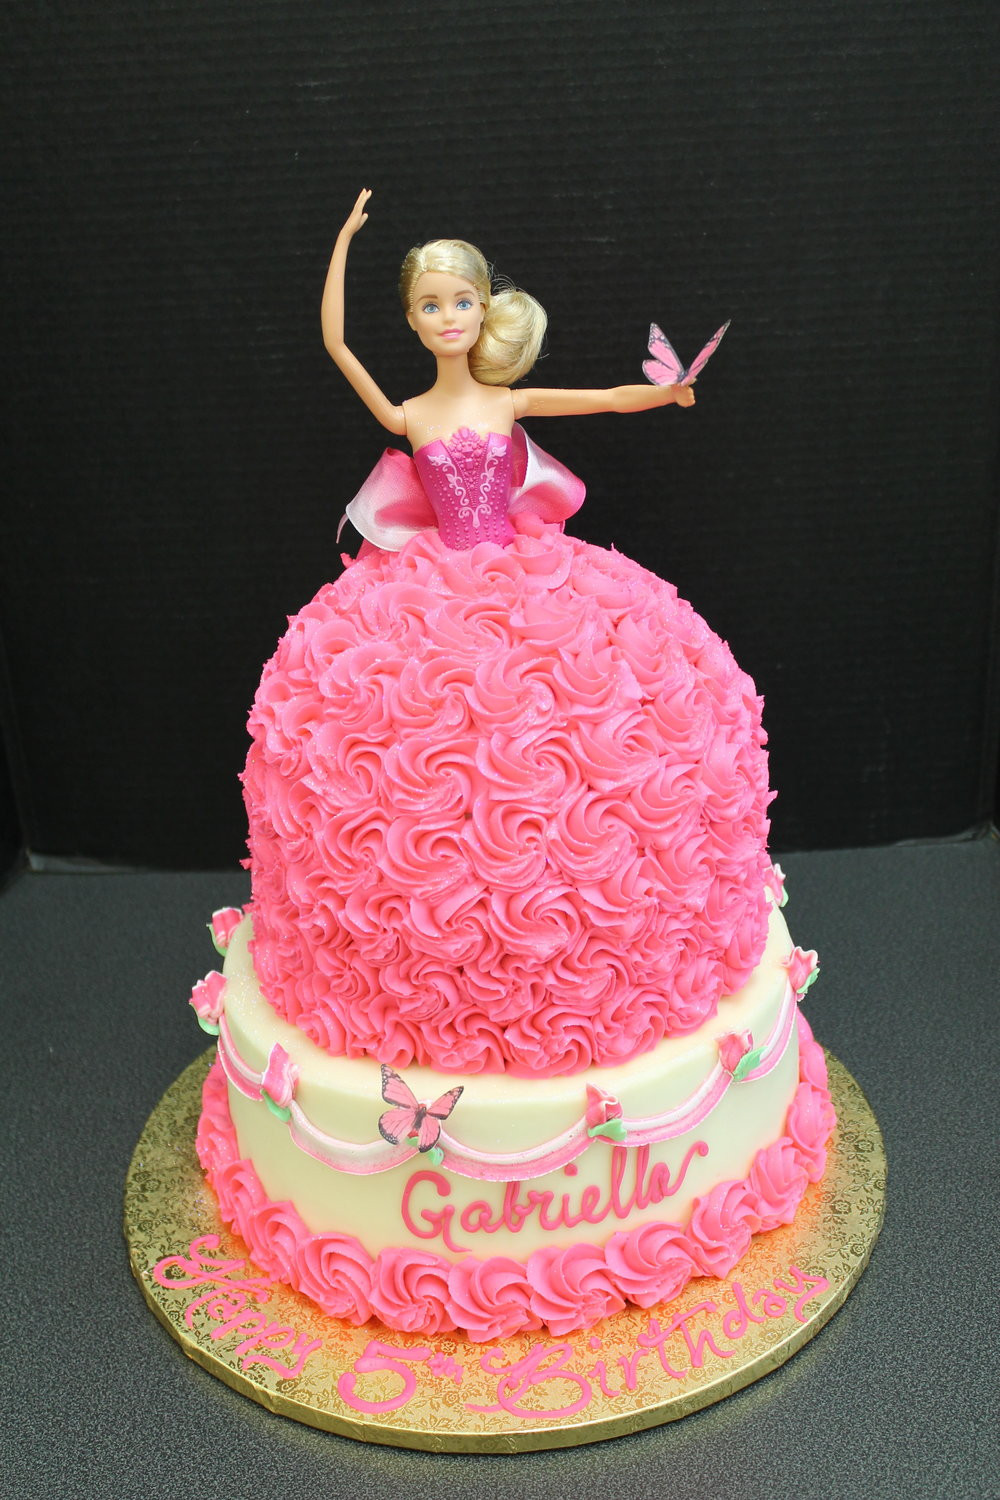 Specialty Birthday Cakes  Specialty Birthday Cakes Delaware County PA — SophistiCakes